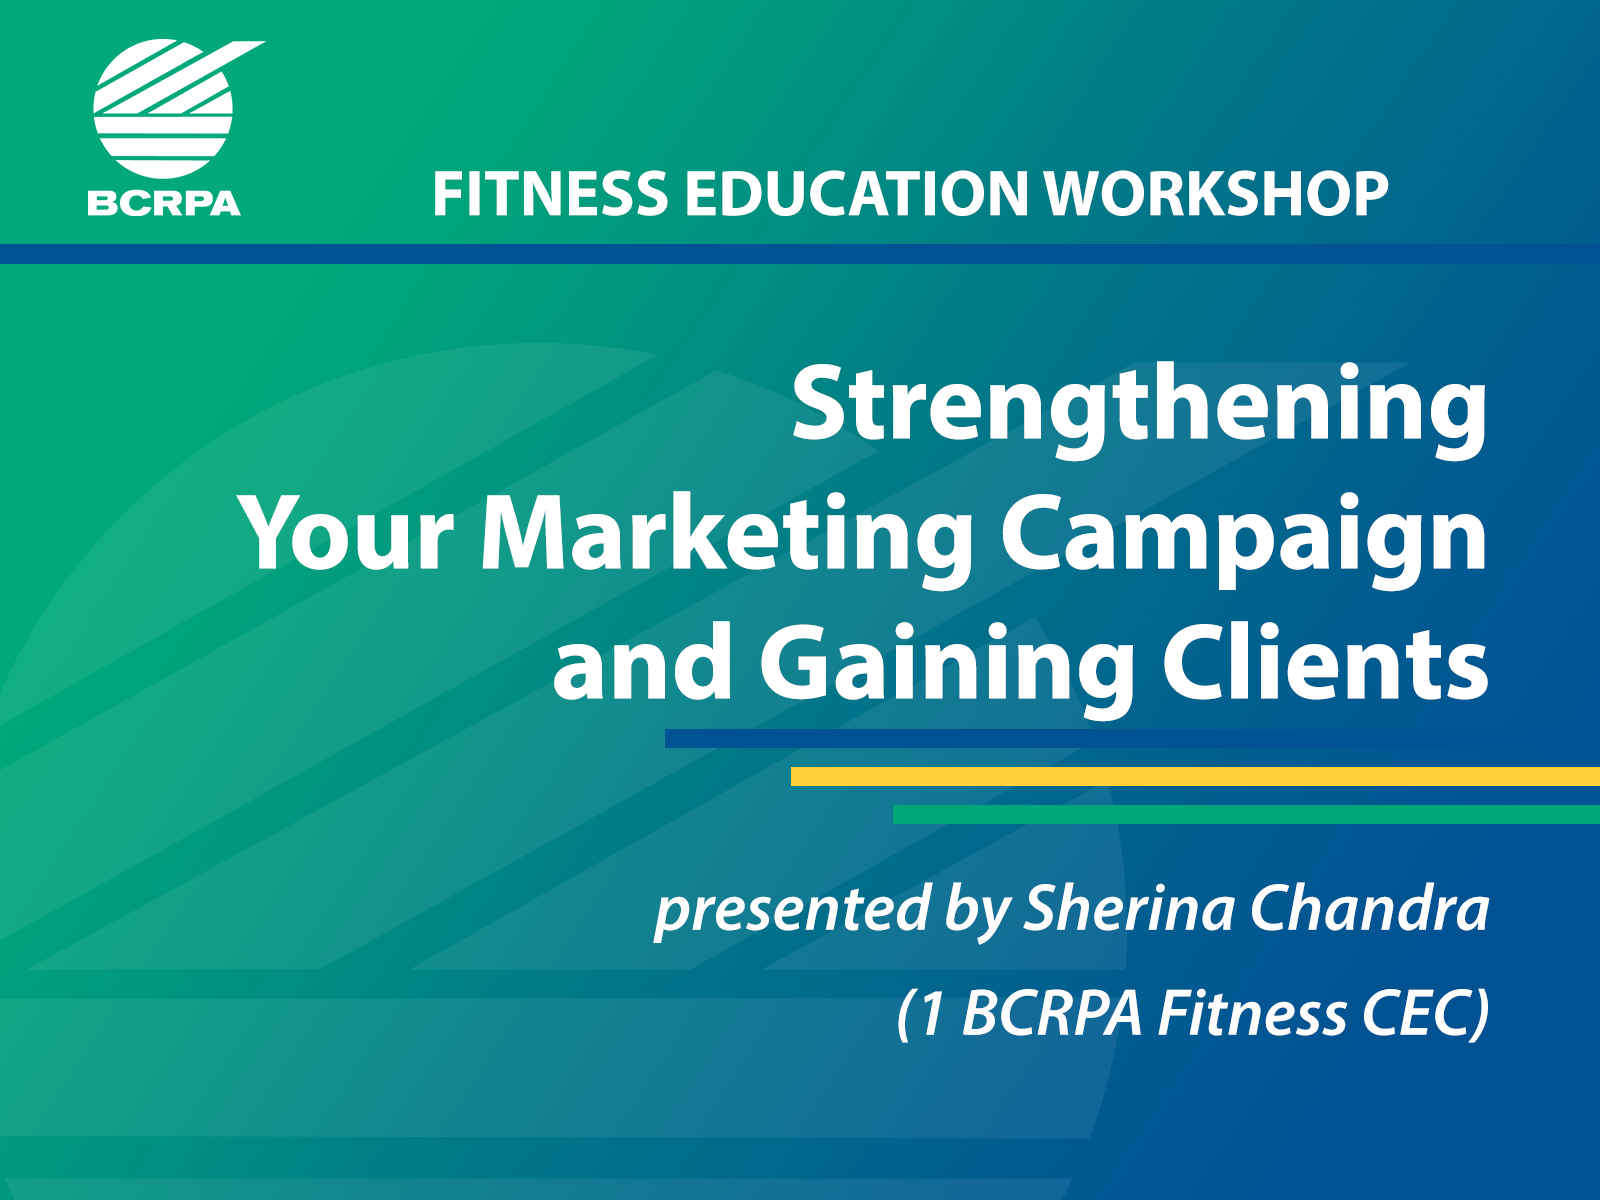 Strengthening Your Marketing Campaign and Gaining Clients